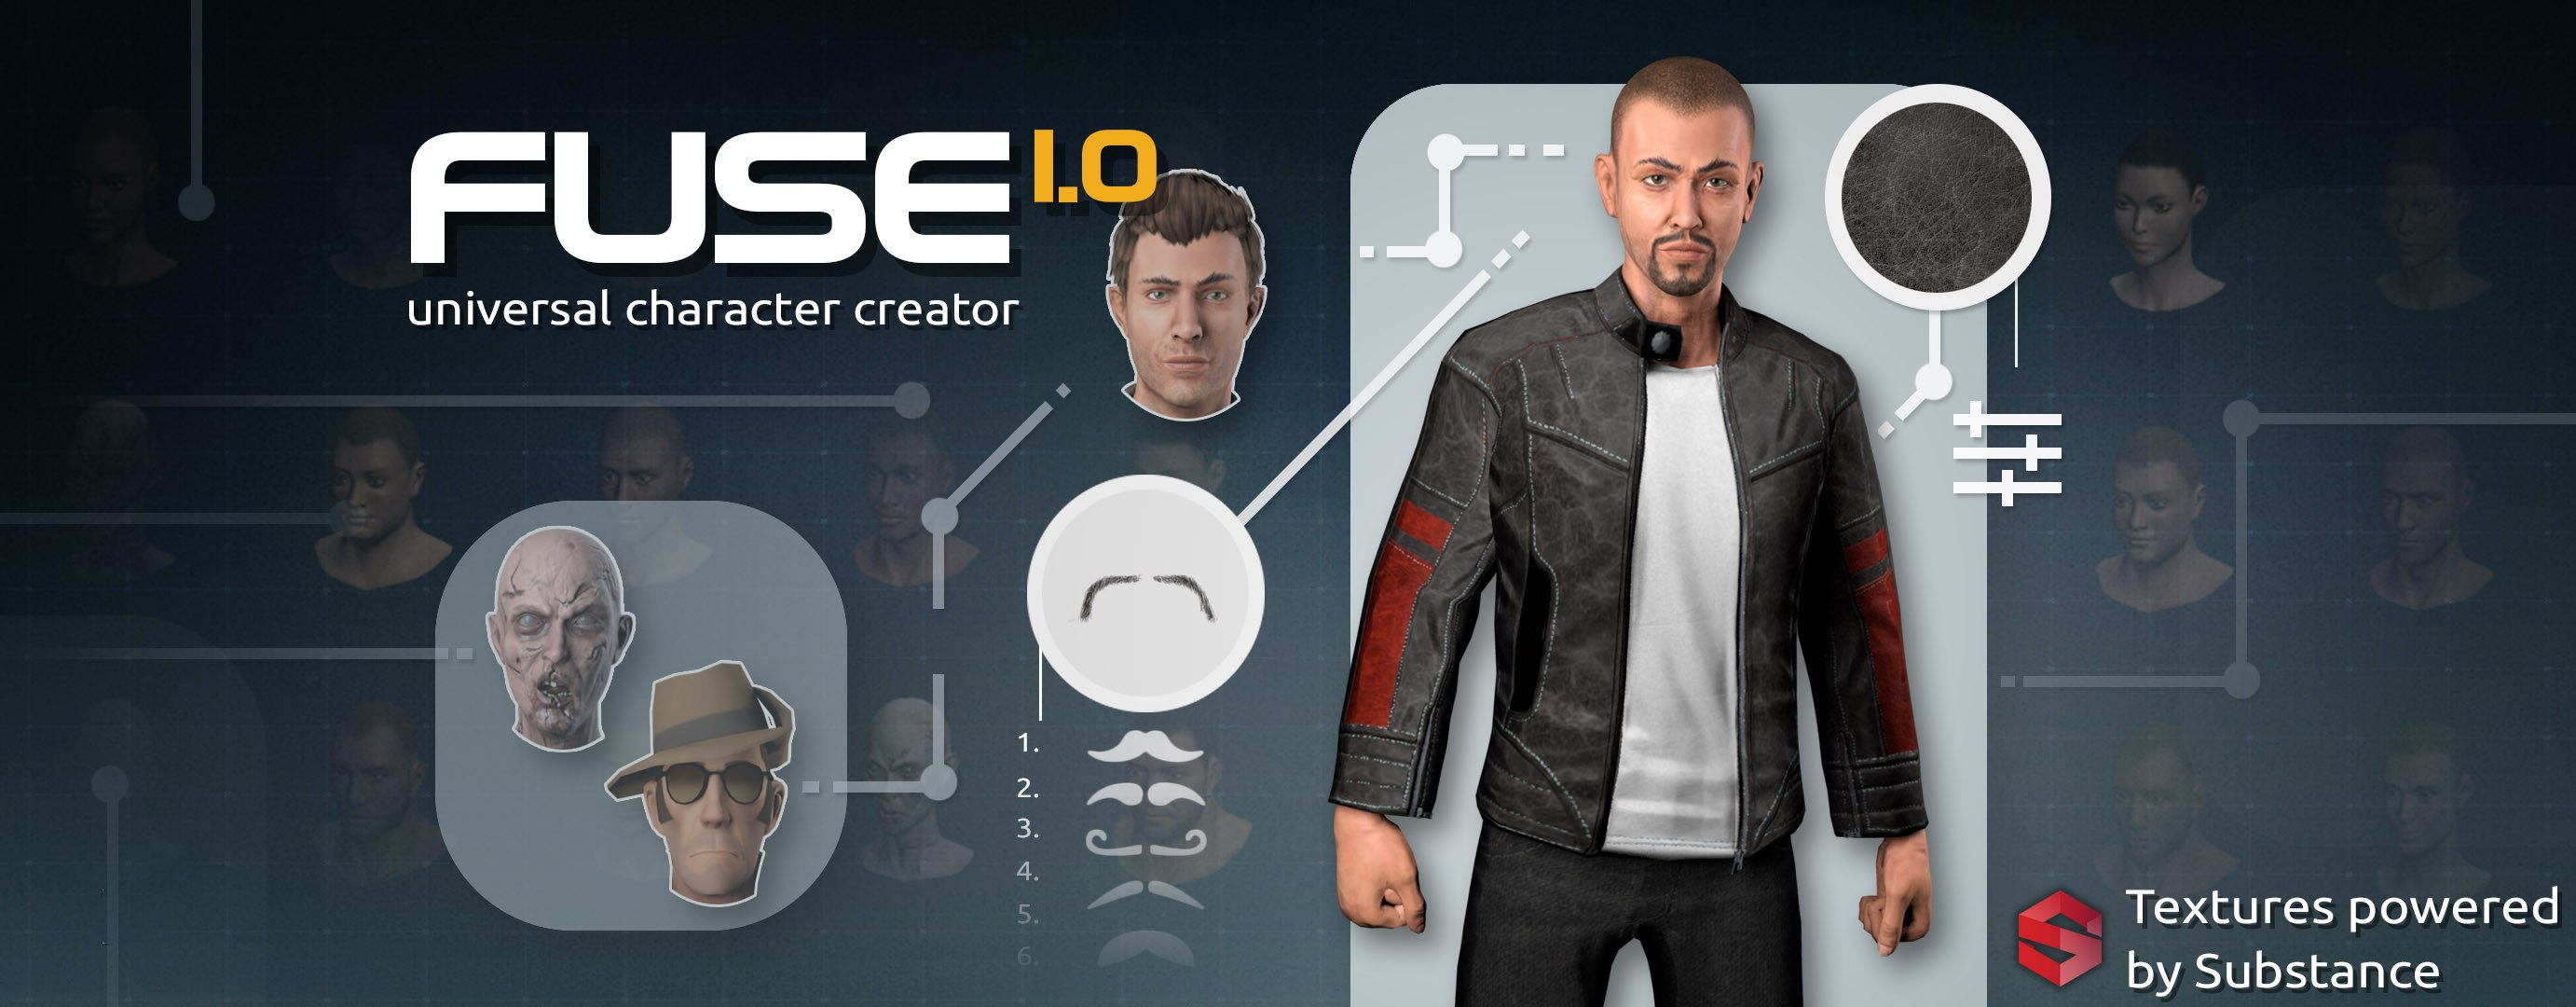 Mixamo's Fuse 1 0 Launches on Steam | Animation World Network